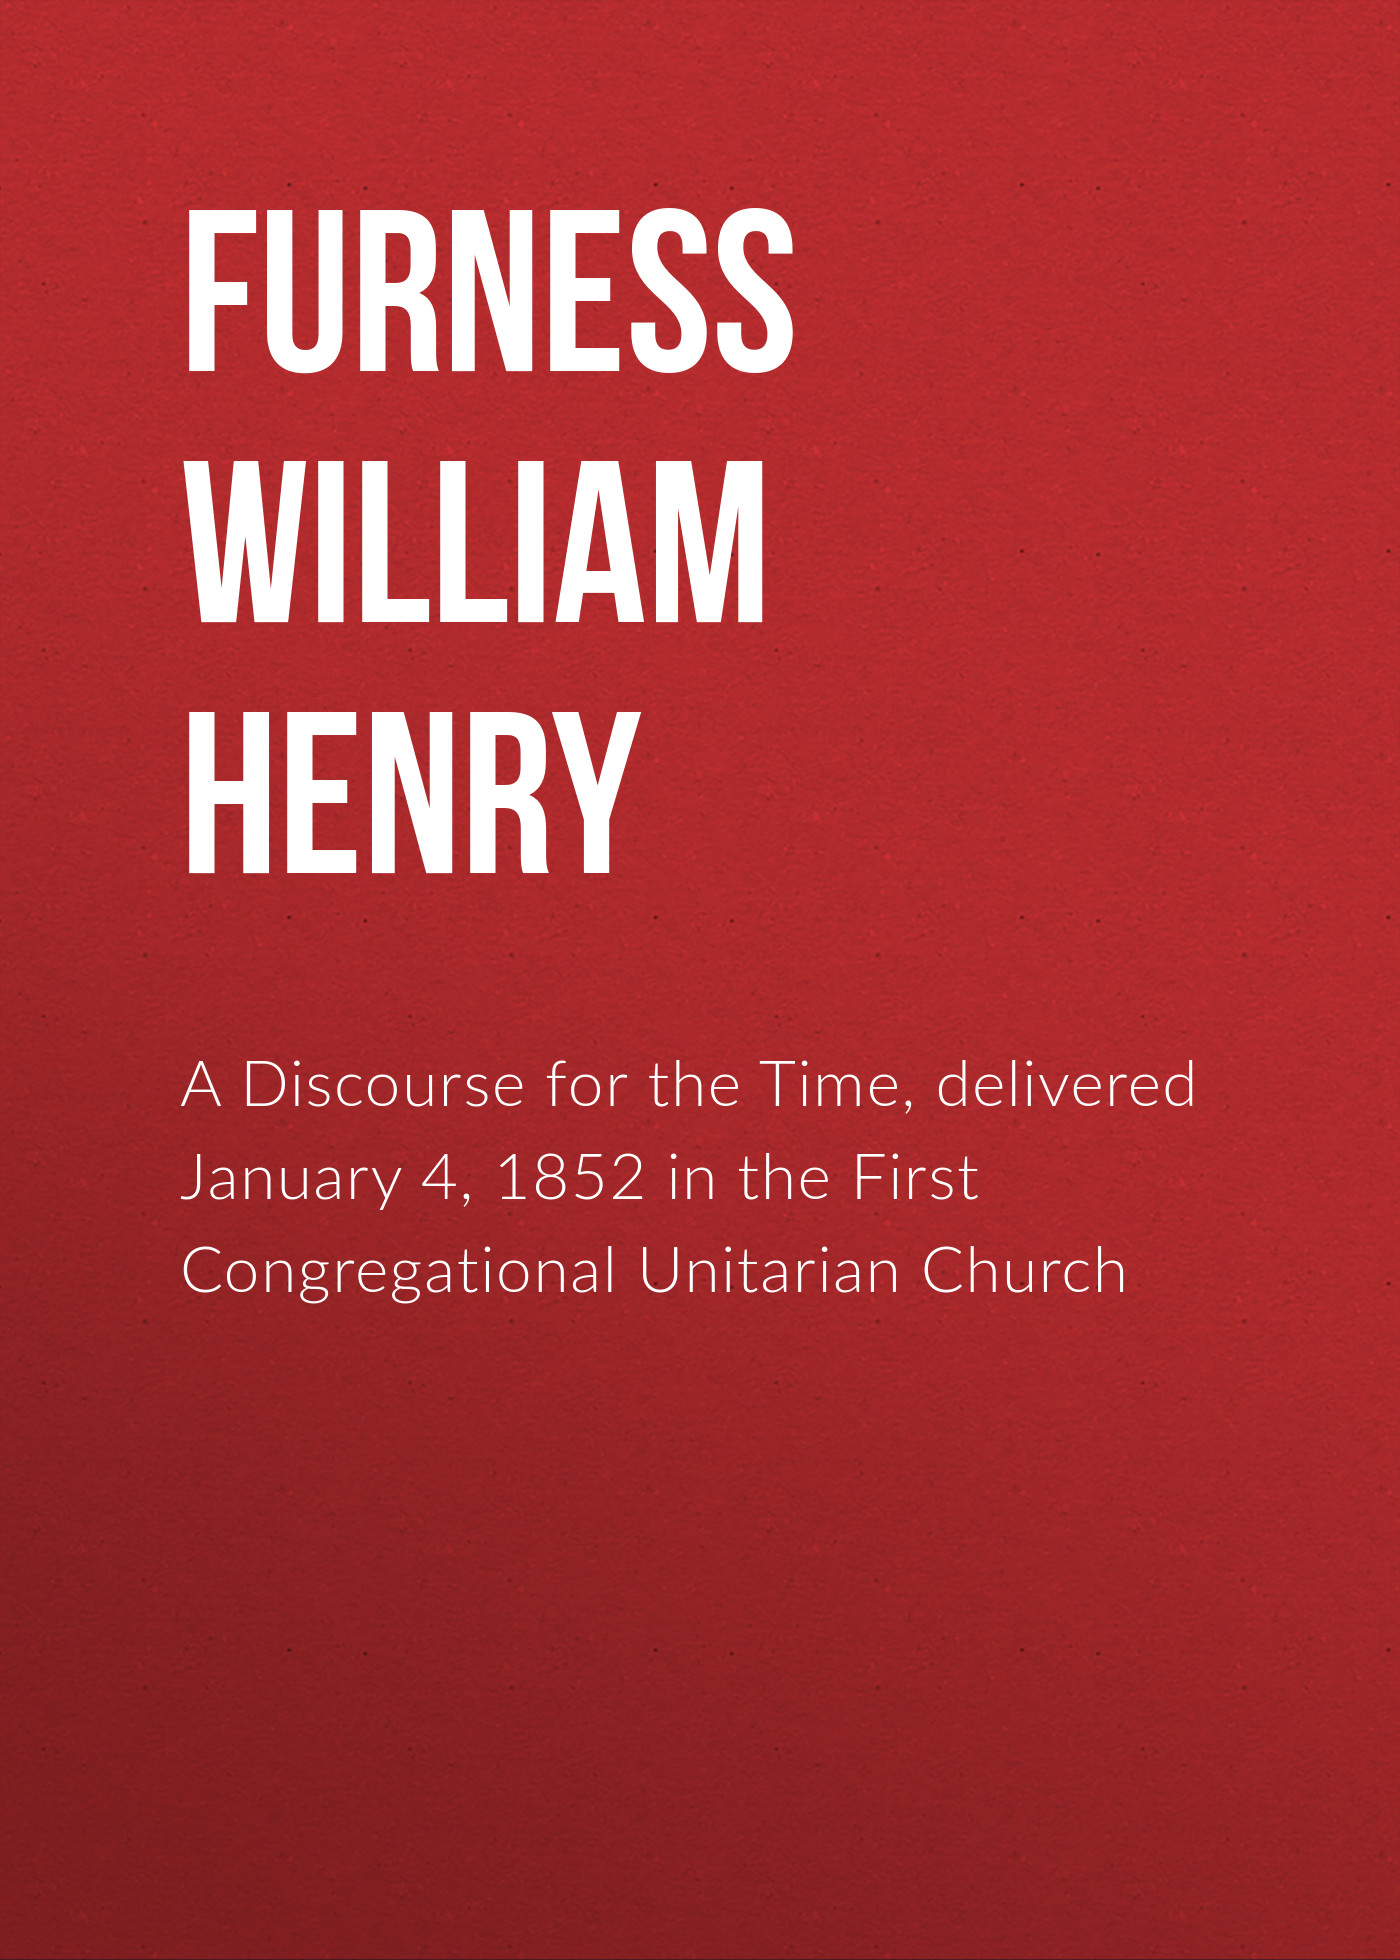 Furness William Henry A Discourse for the Time, delivered January 4, 1852 in the First Congregational Unitarian Church душевой гарнитур frap f2409